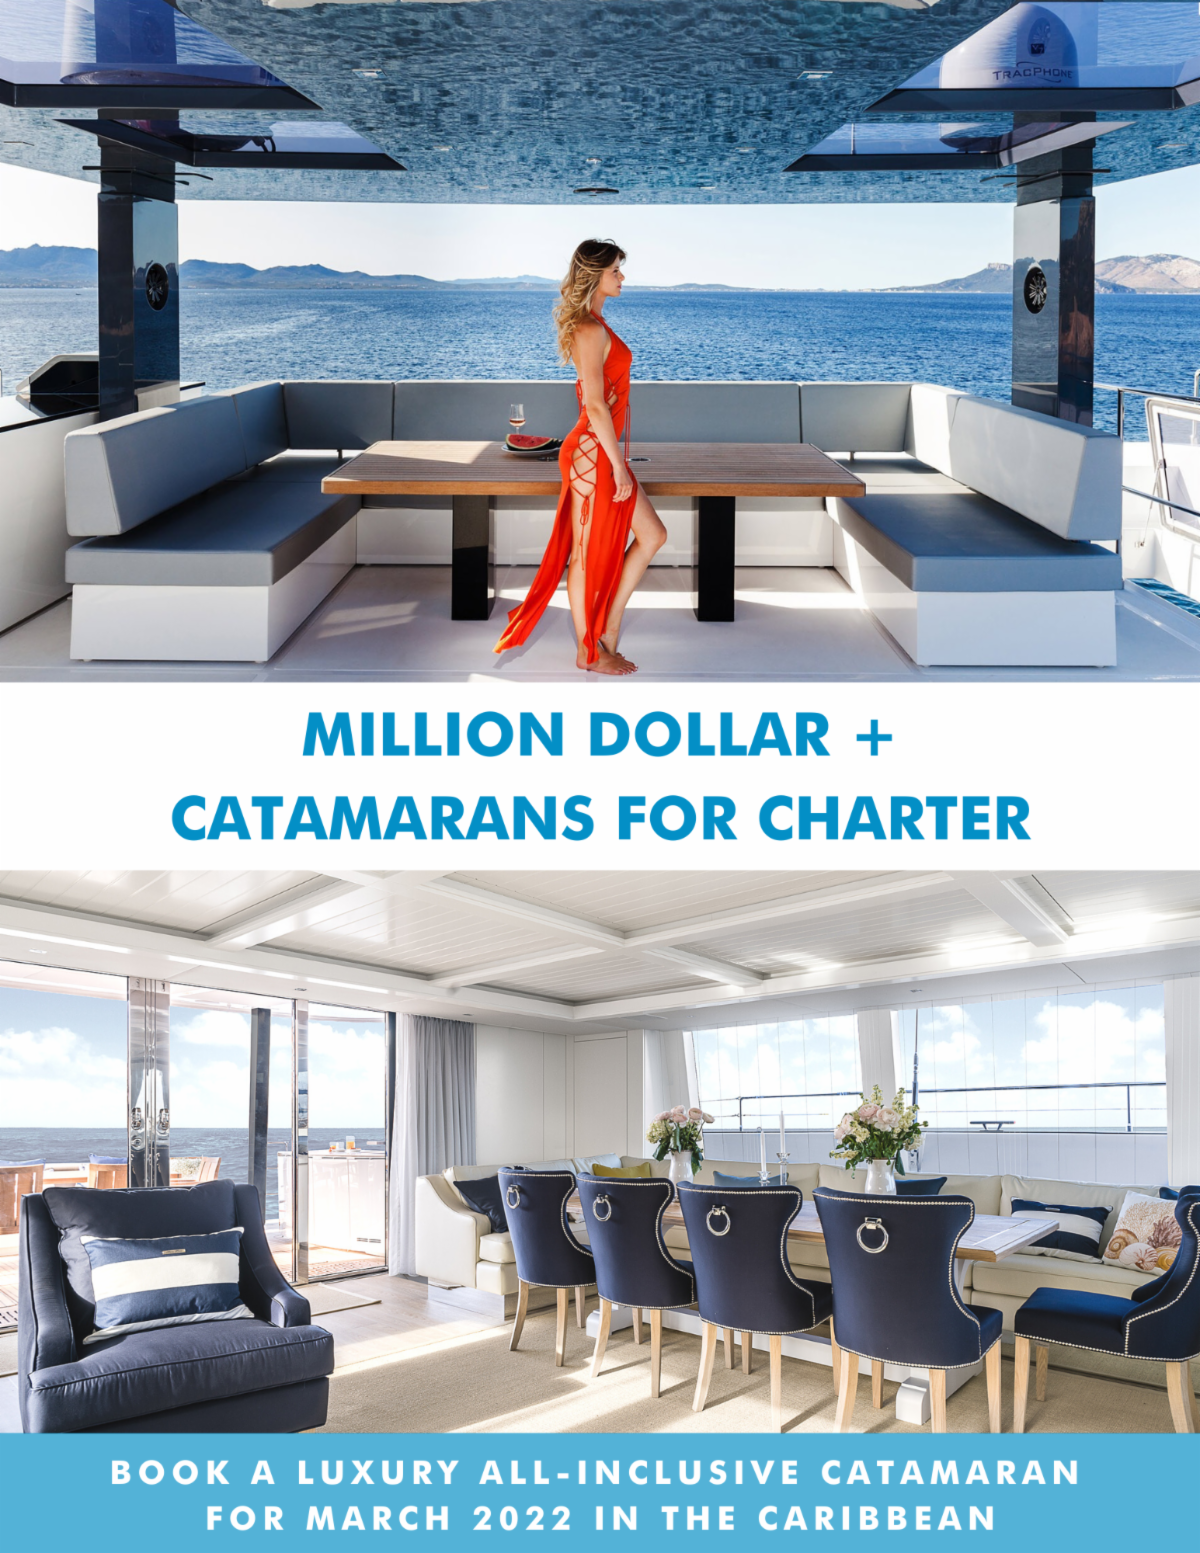 Million Dollar + Catamarans For Charter